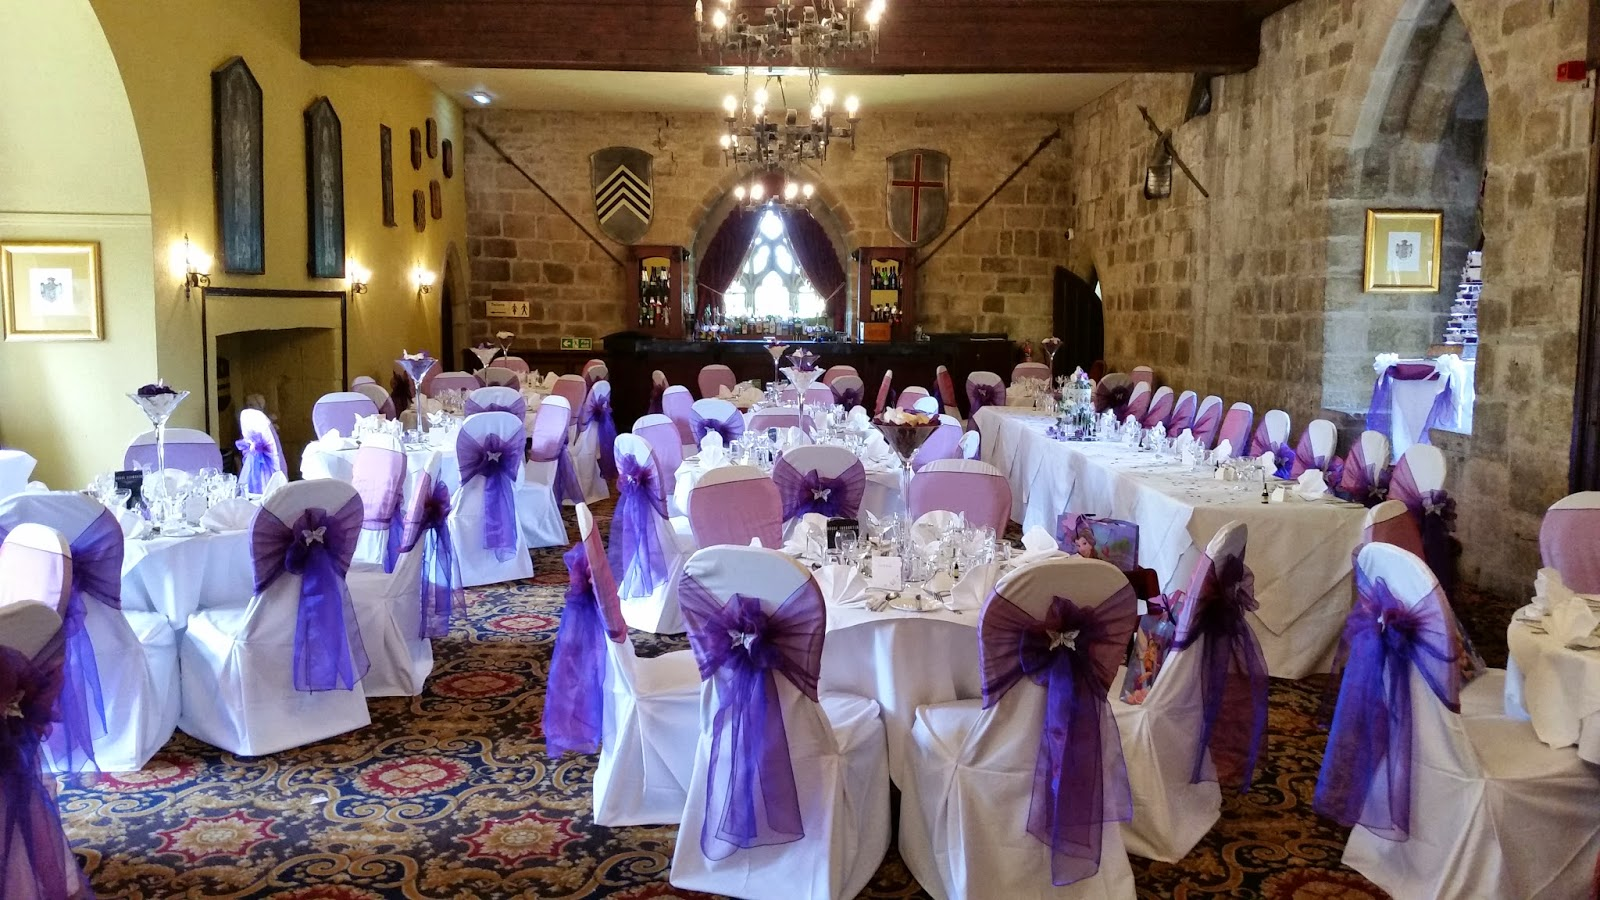 Simply Elegant Chair Covers And Linens Peacock Wicker For Sale Bows November 2014